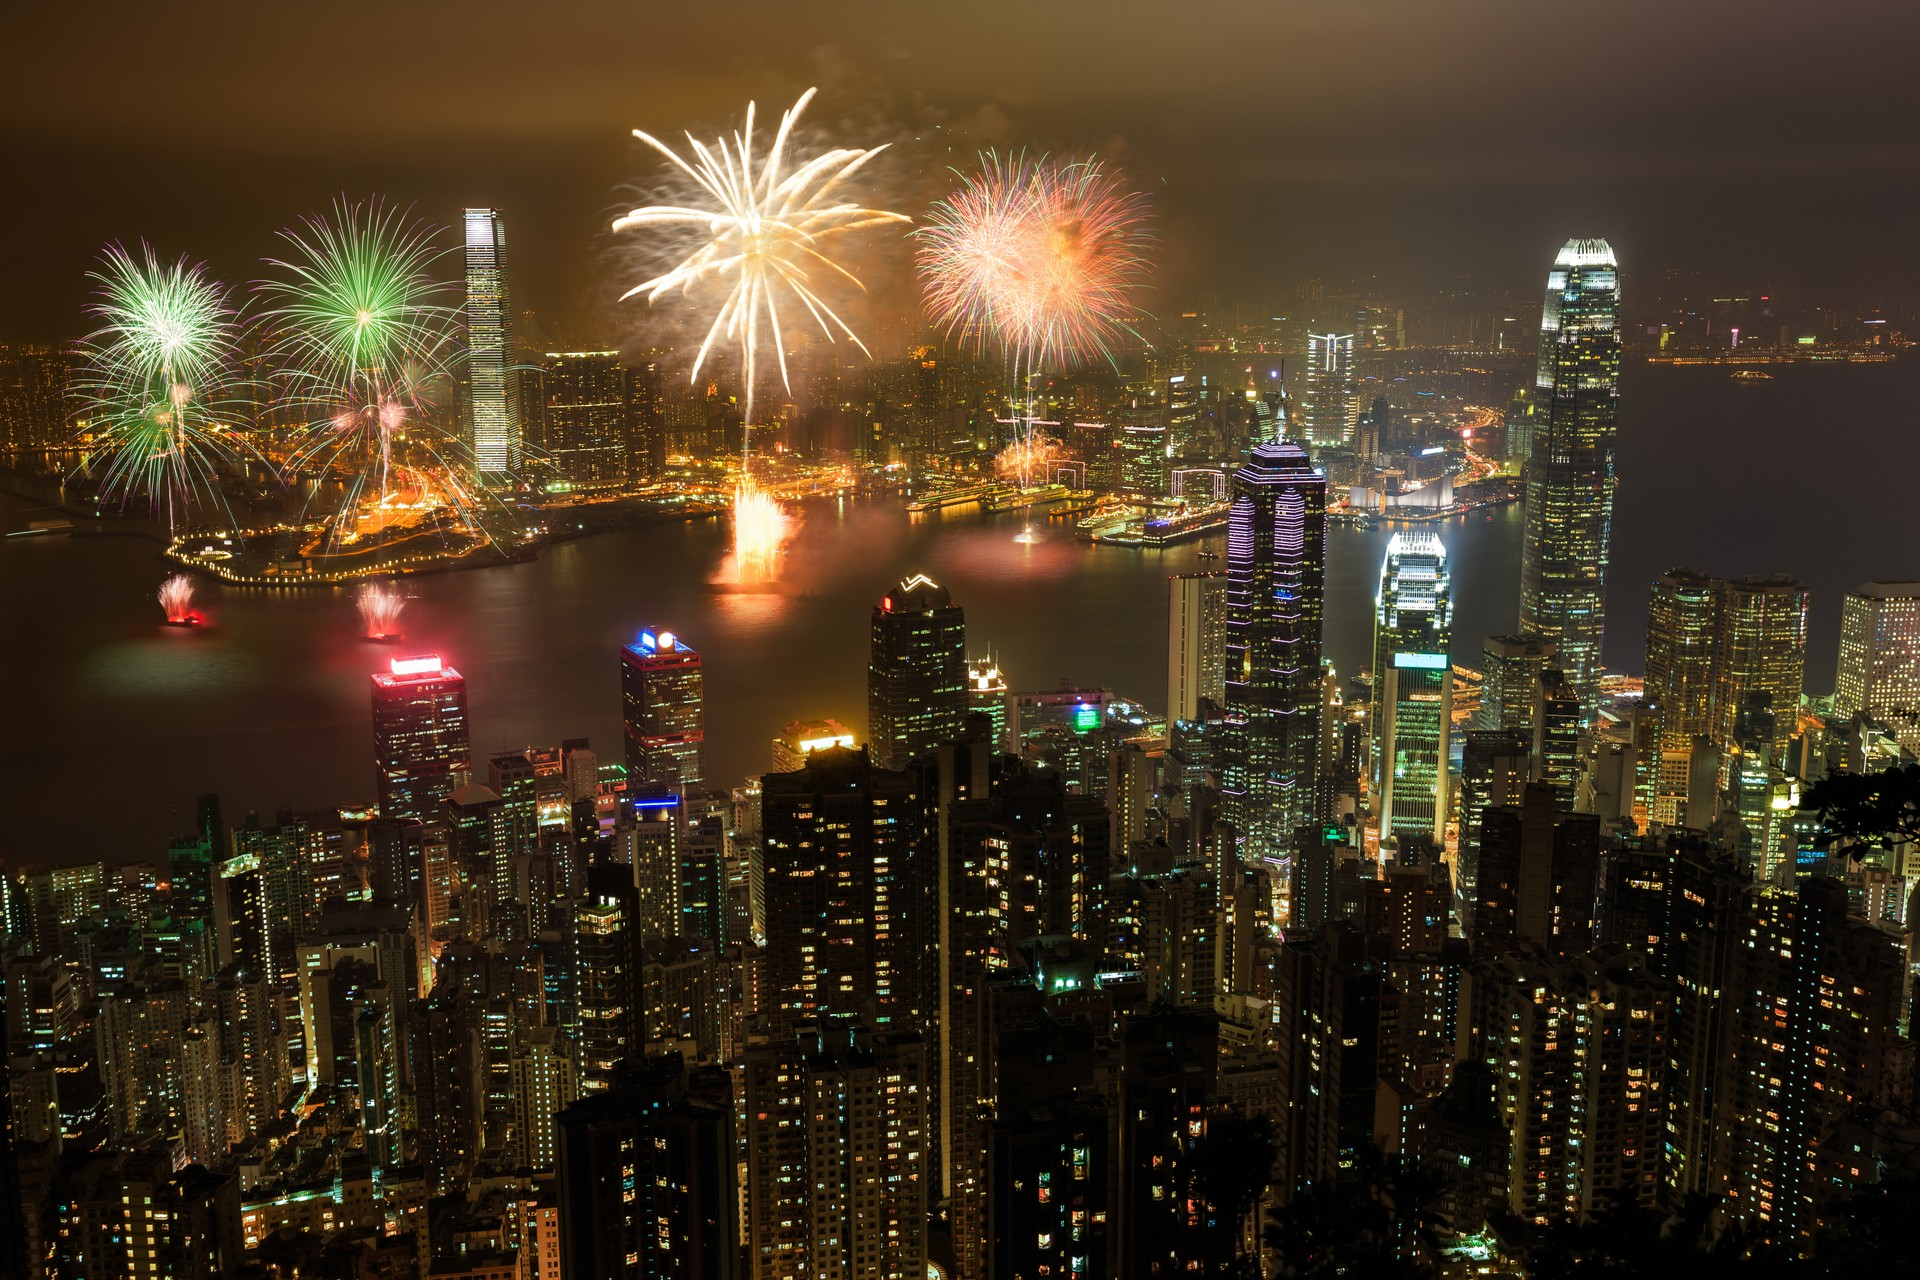 Fireworks at New Year in Hong Kong